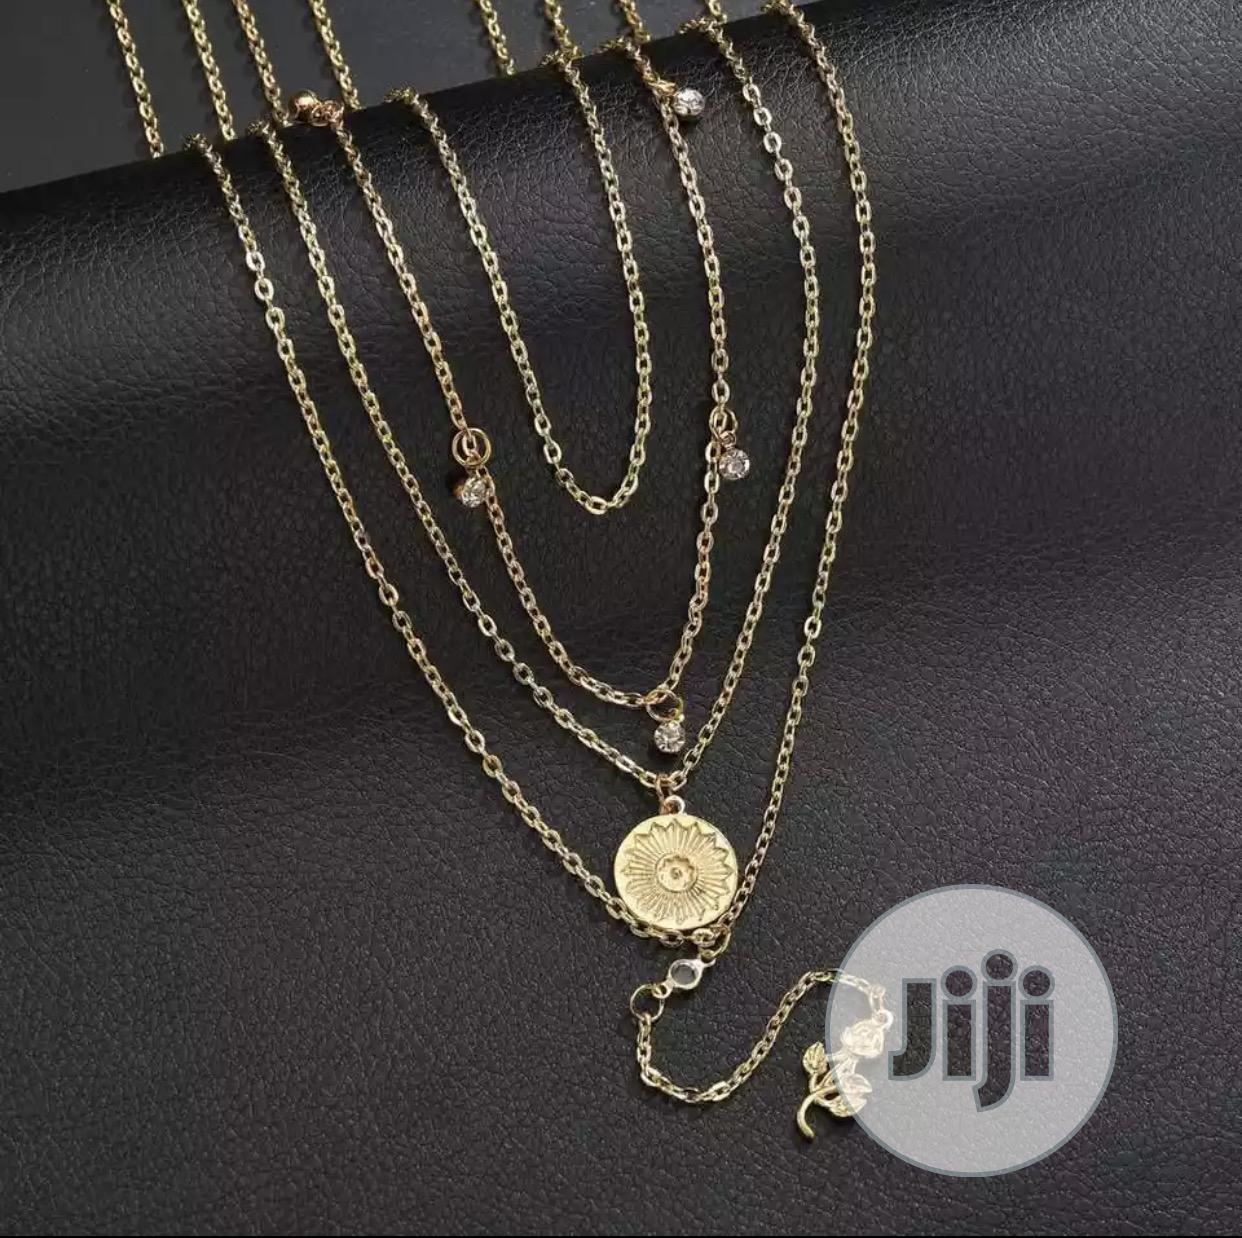 Archive: New Vintage Heart Chain Necklace